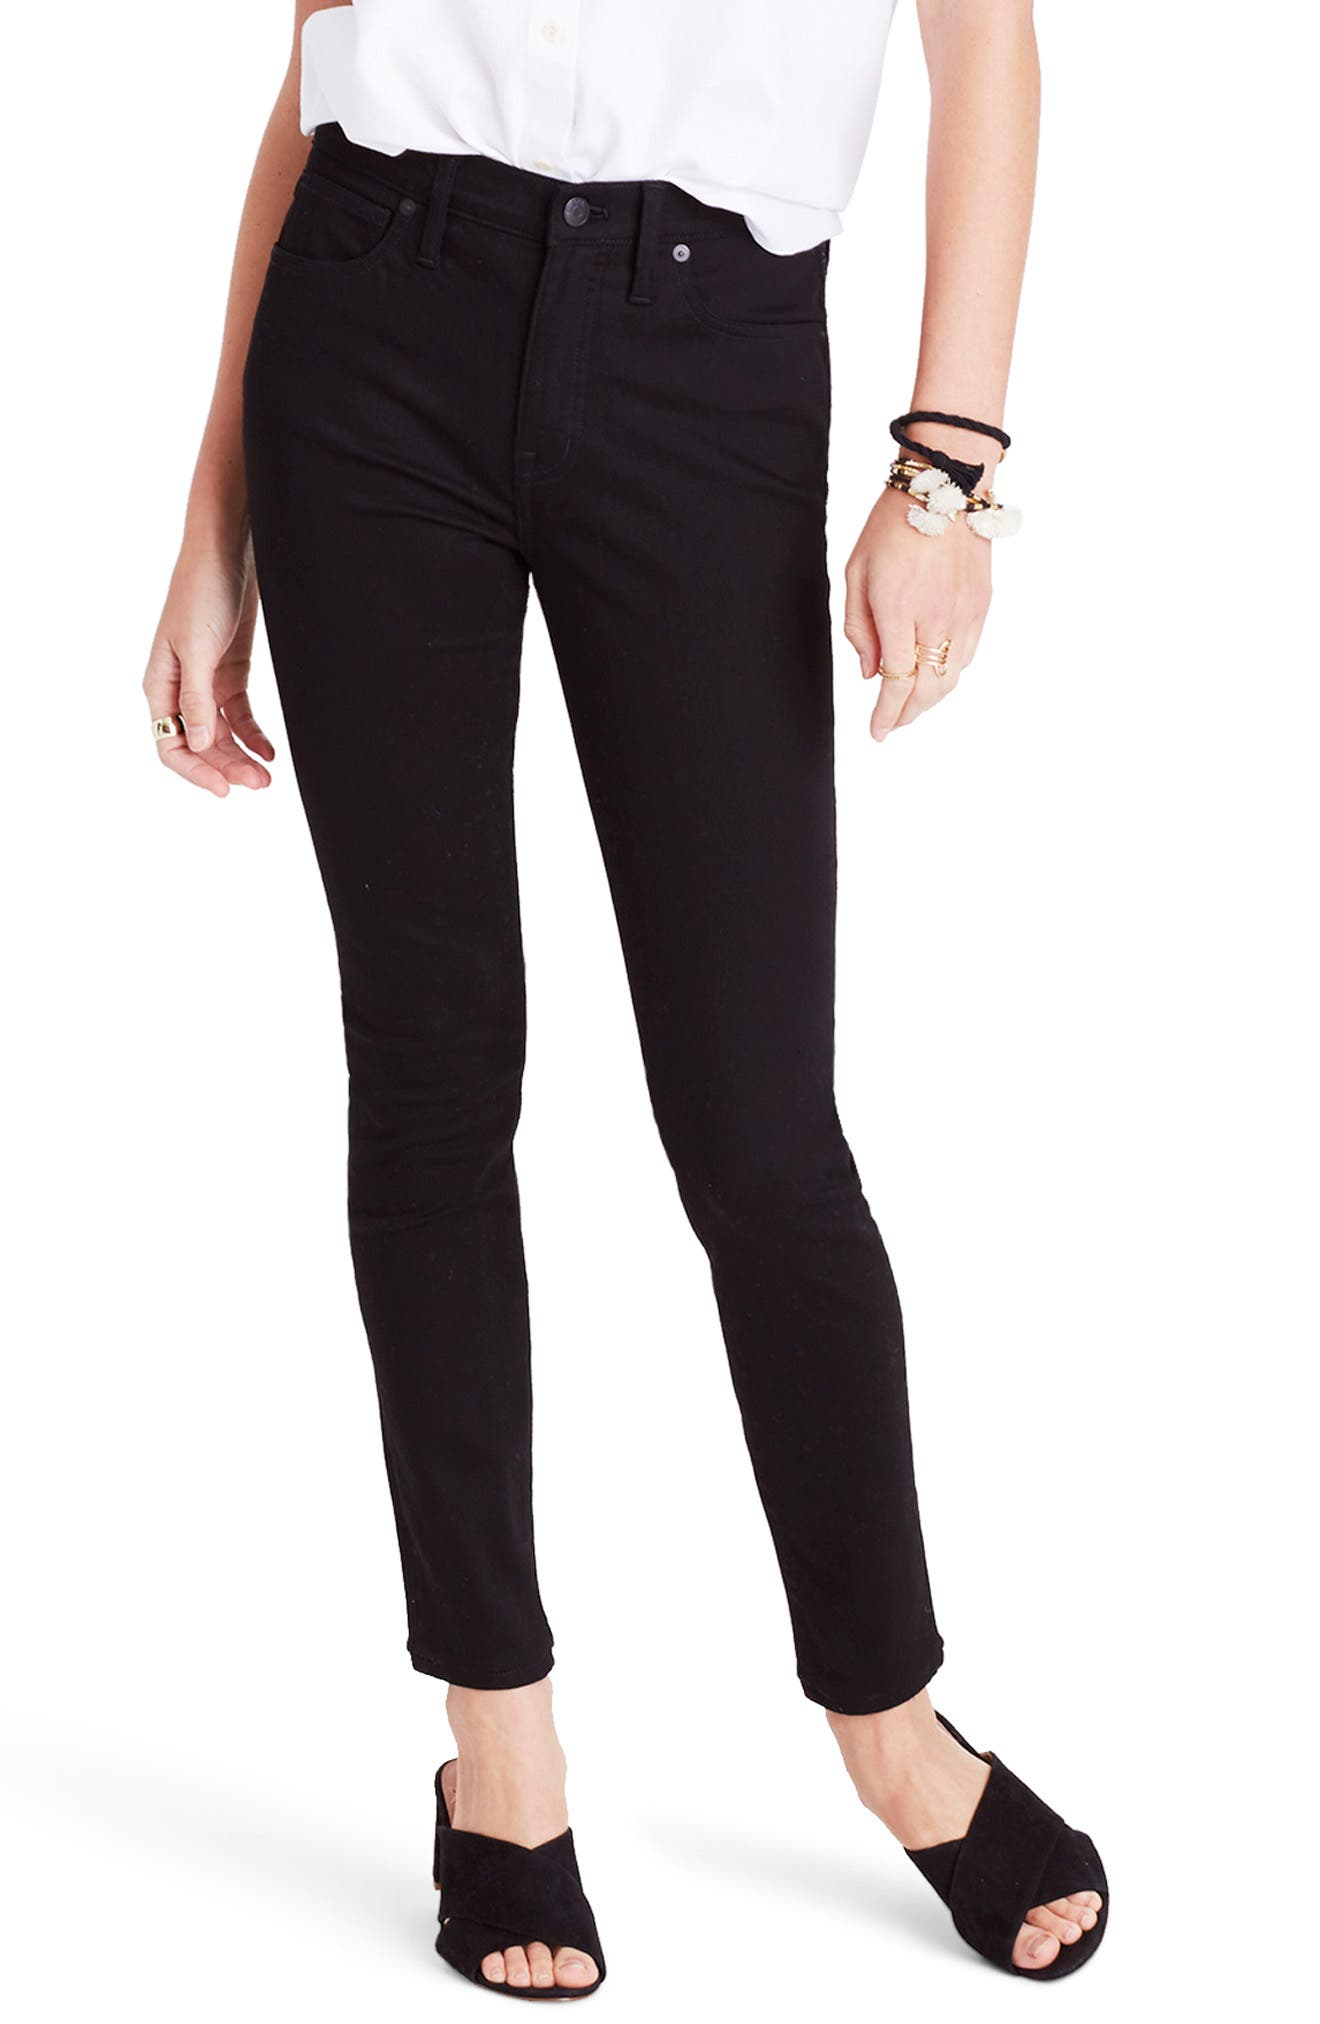 Women's Madewell 9-Inch High Waist Skinny Jeans